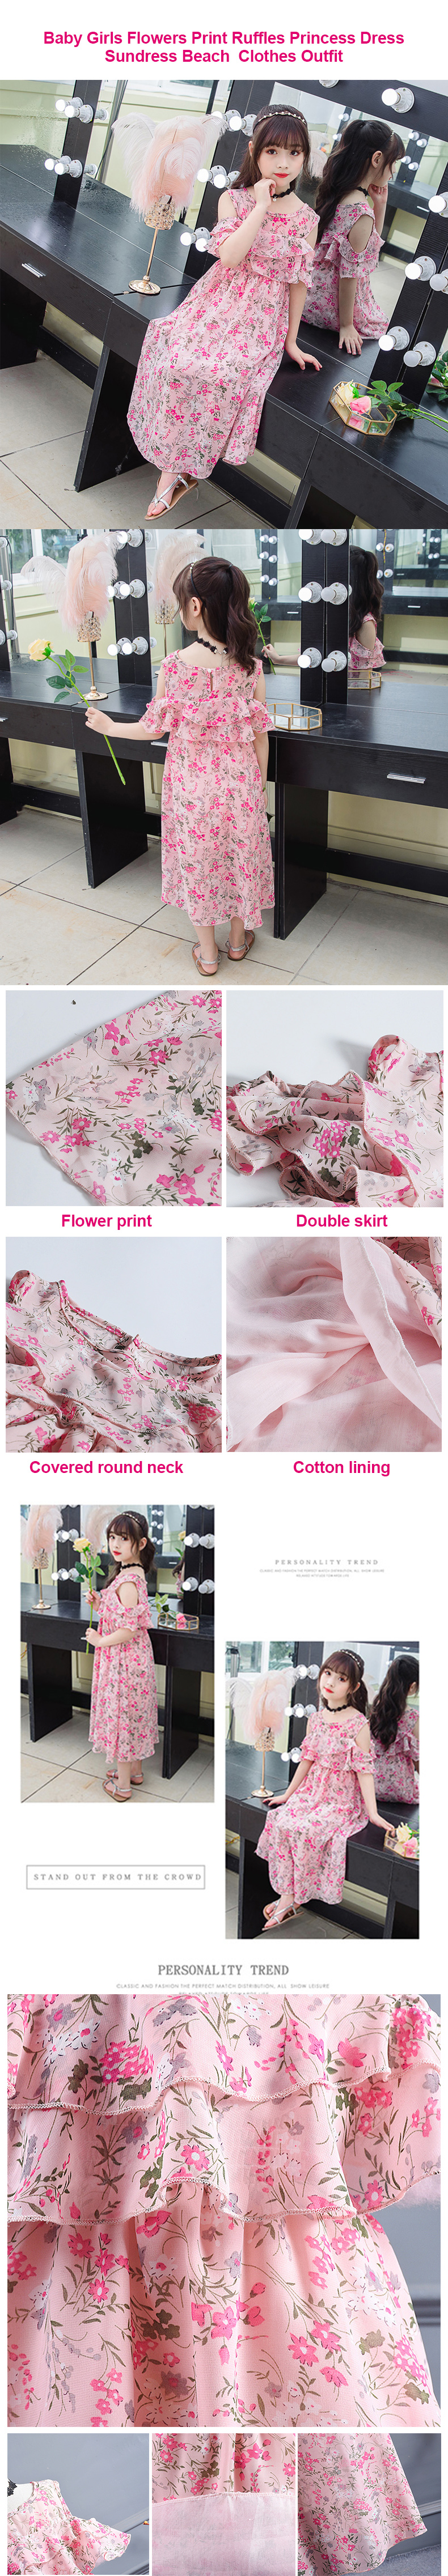 2020 alibaba wholesale price summer beach chiffon flower kid girl dress uo to 13 years old vintage pink flower girl dresses